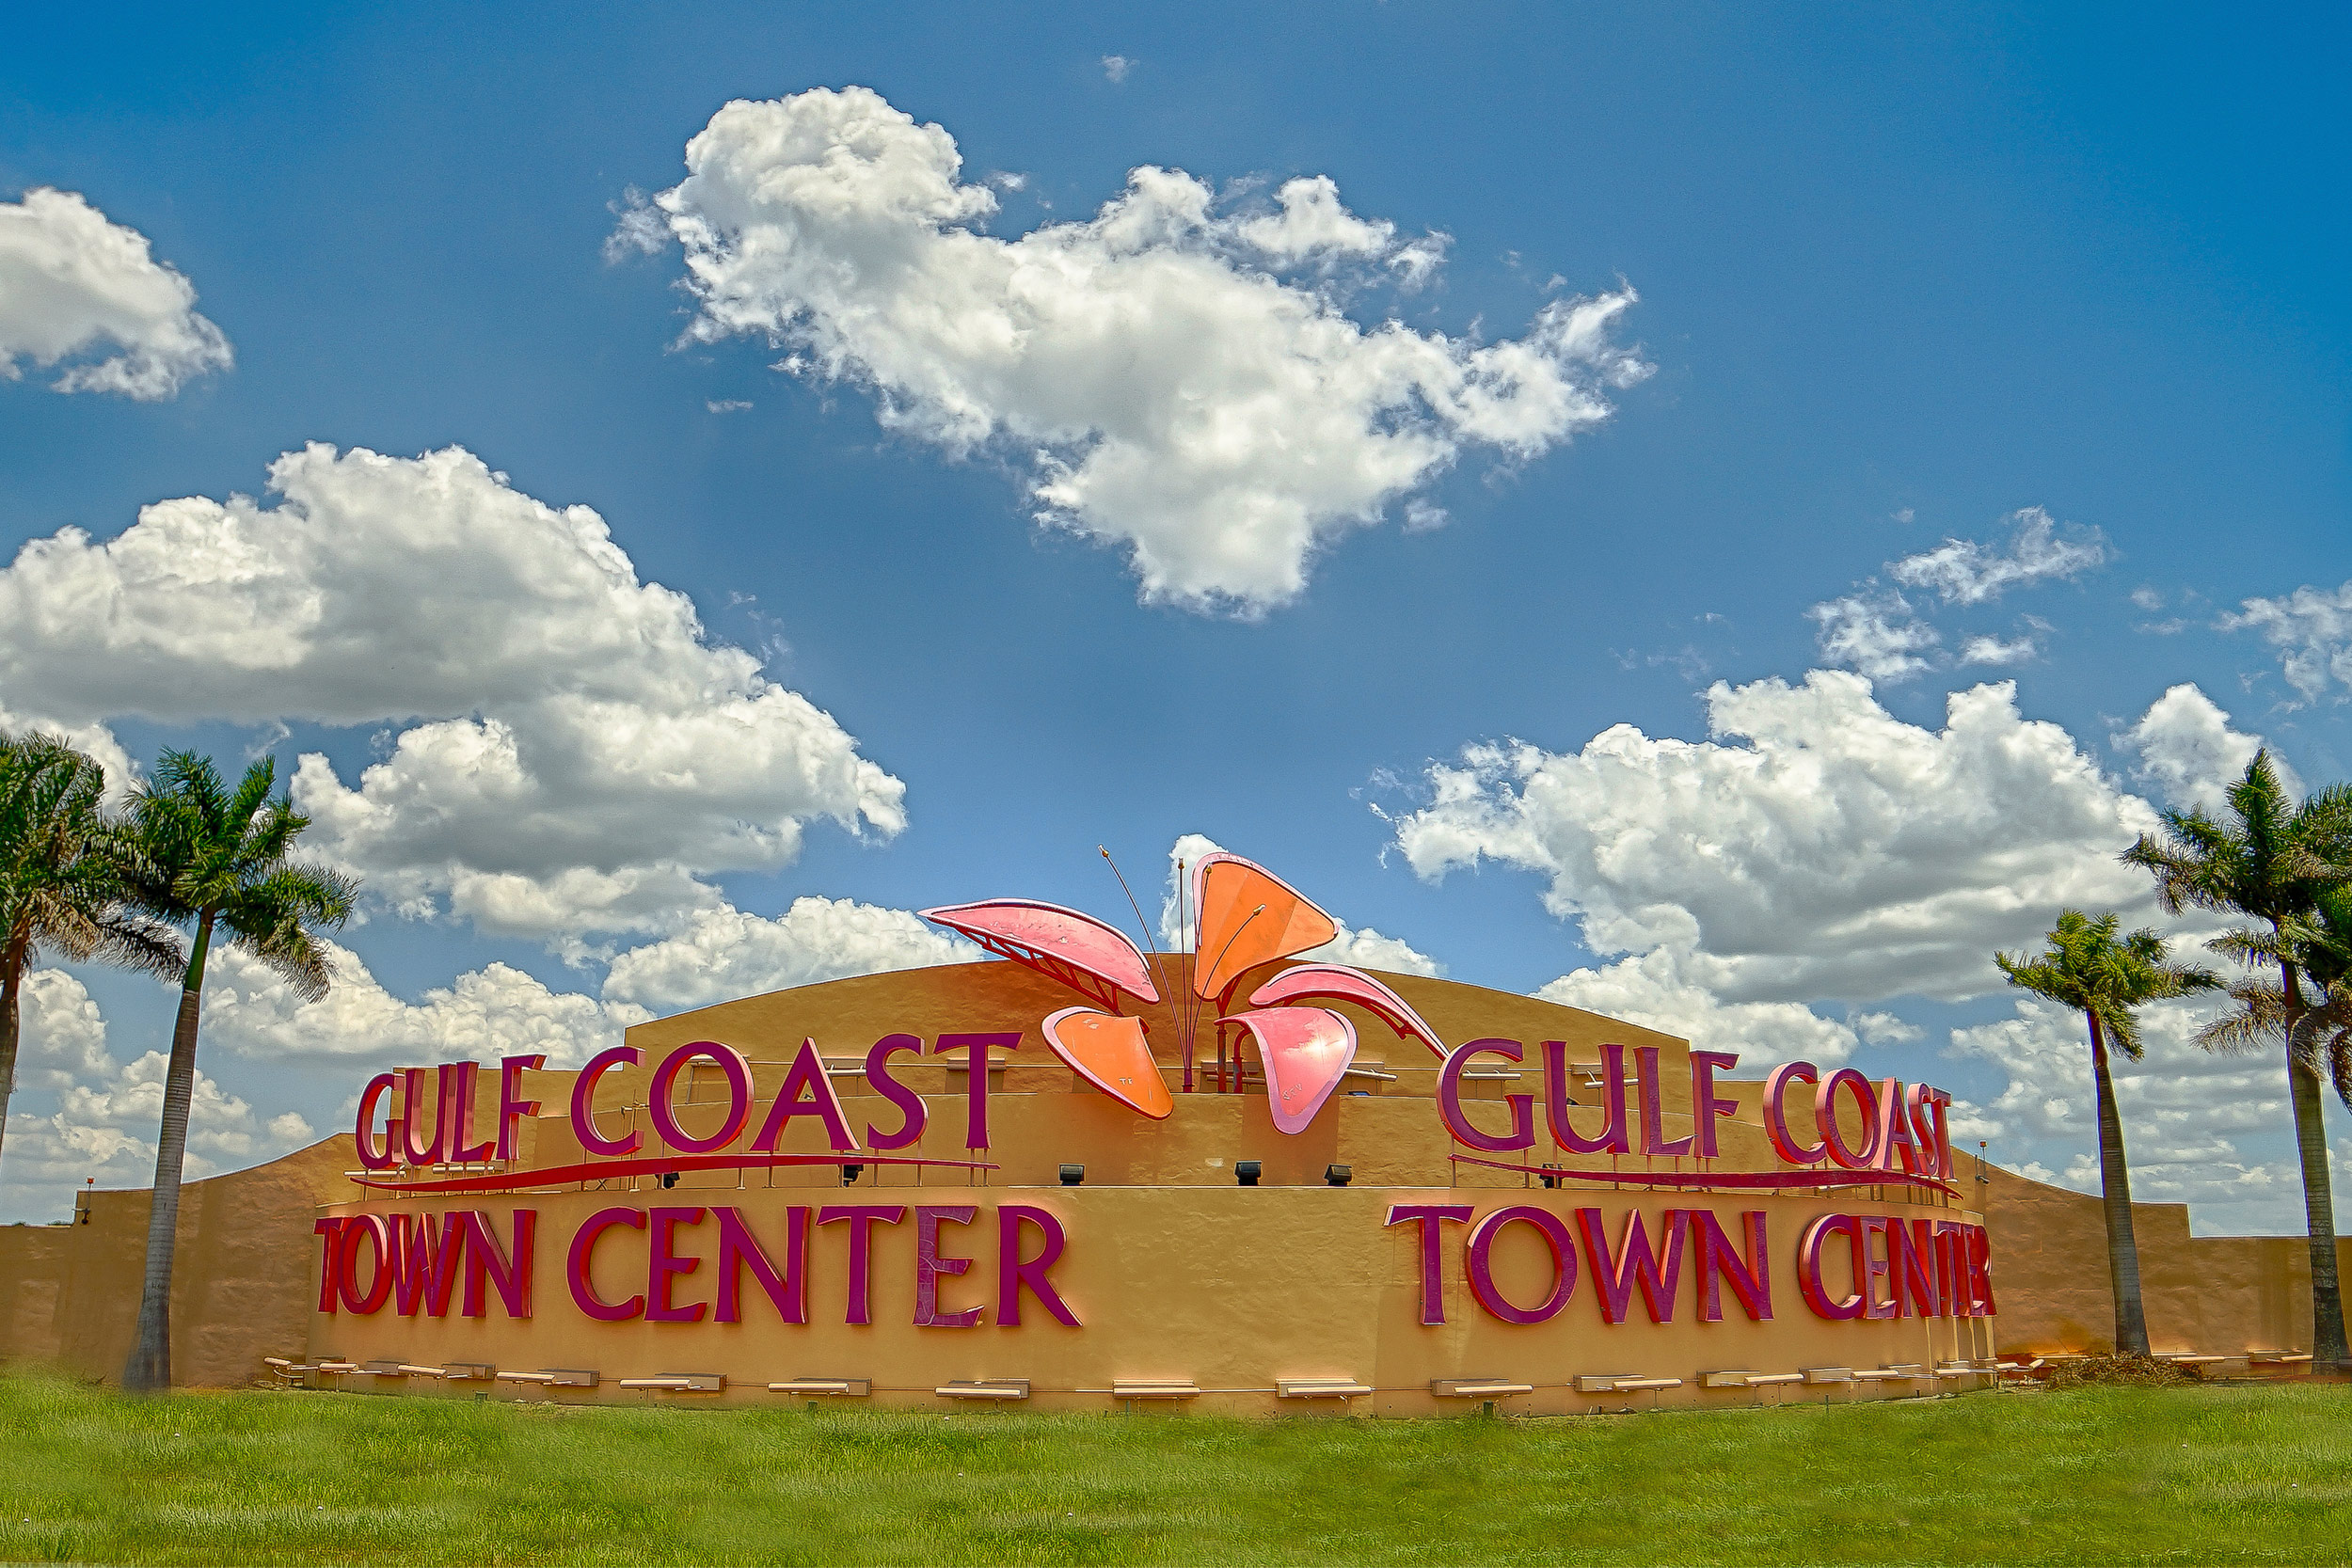 Gulf-Coast-Town-Center-New-Signage.png